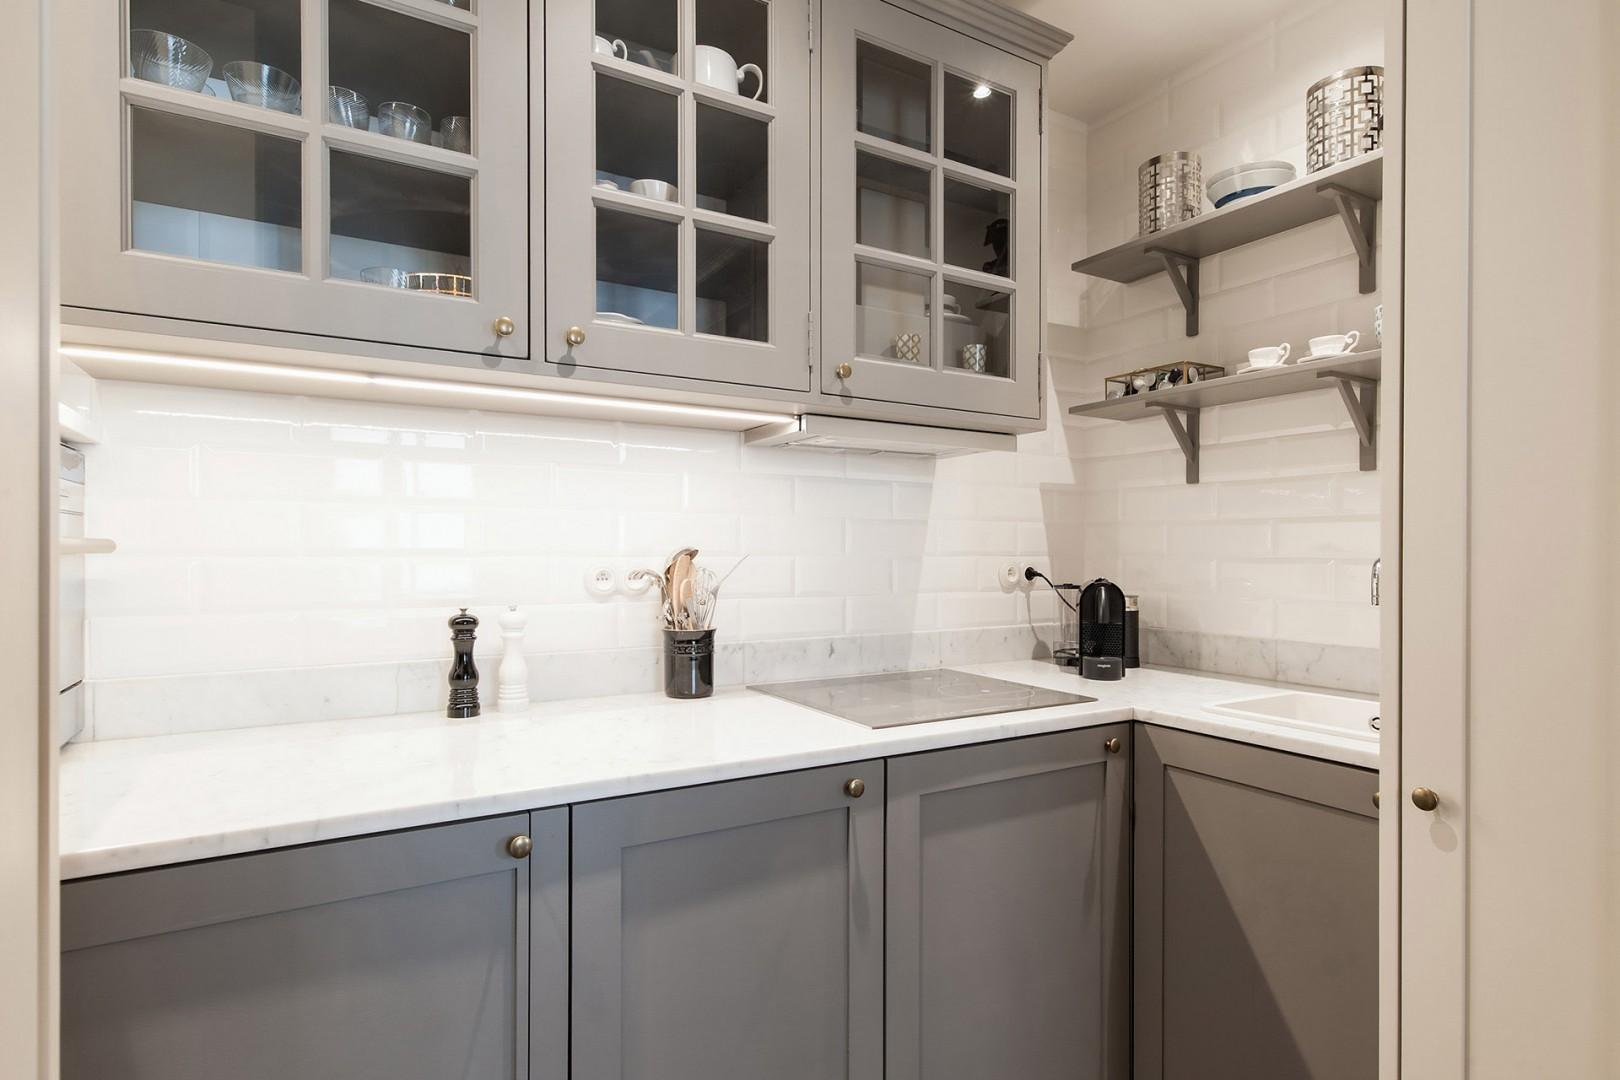 The functional kitchen is ideal for preparing intimate dinners at home.